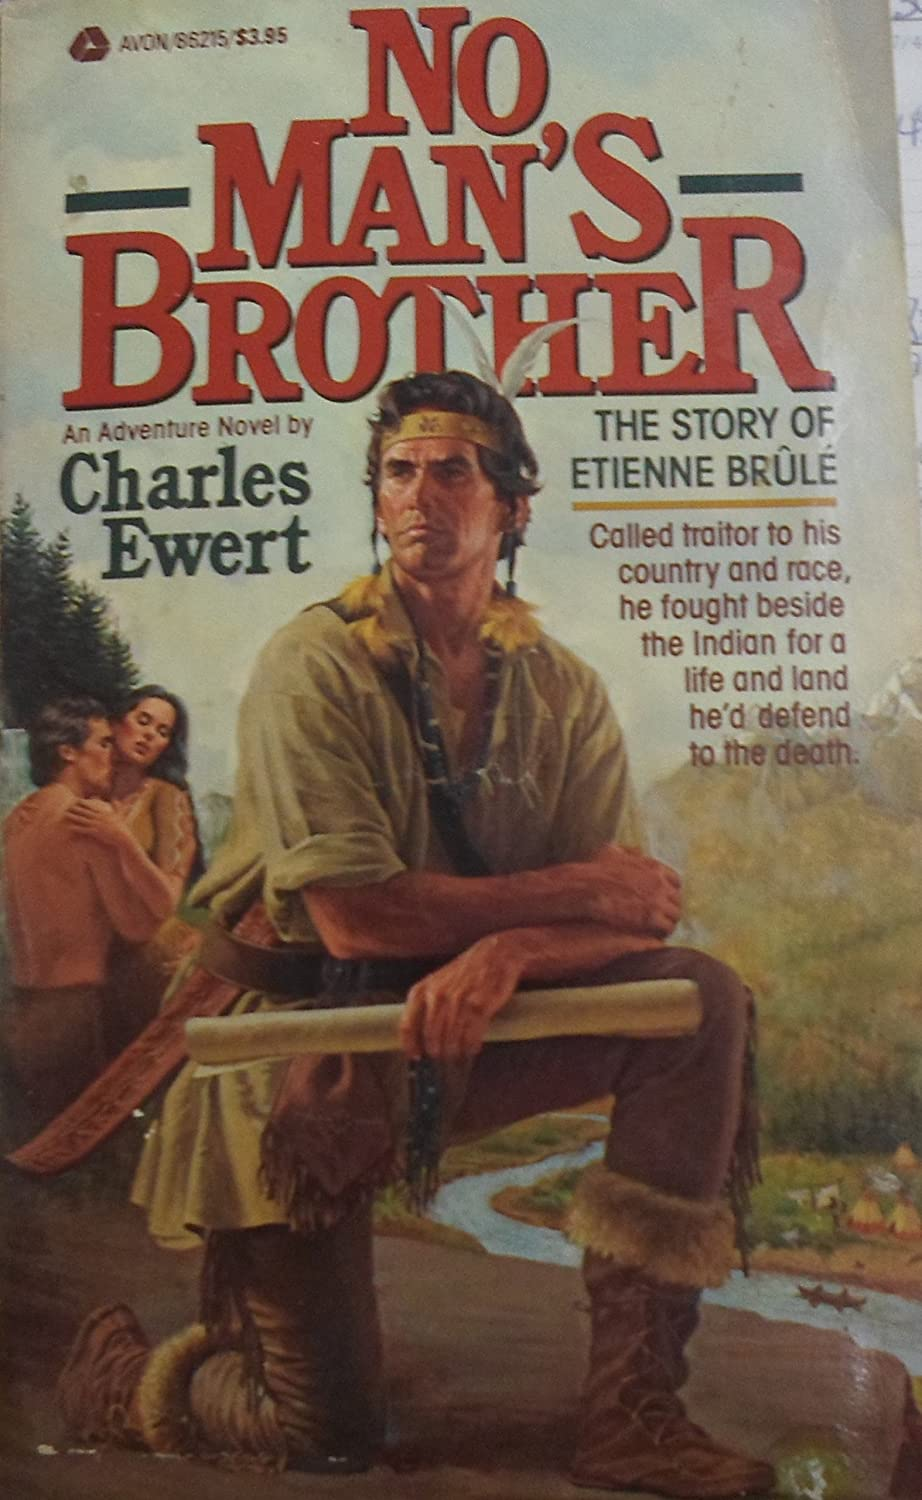 Amazon: No Man's Brother (the Story Etienne Brule): Charles Ewert:  Health & Personal Care